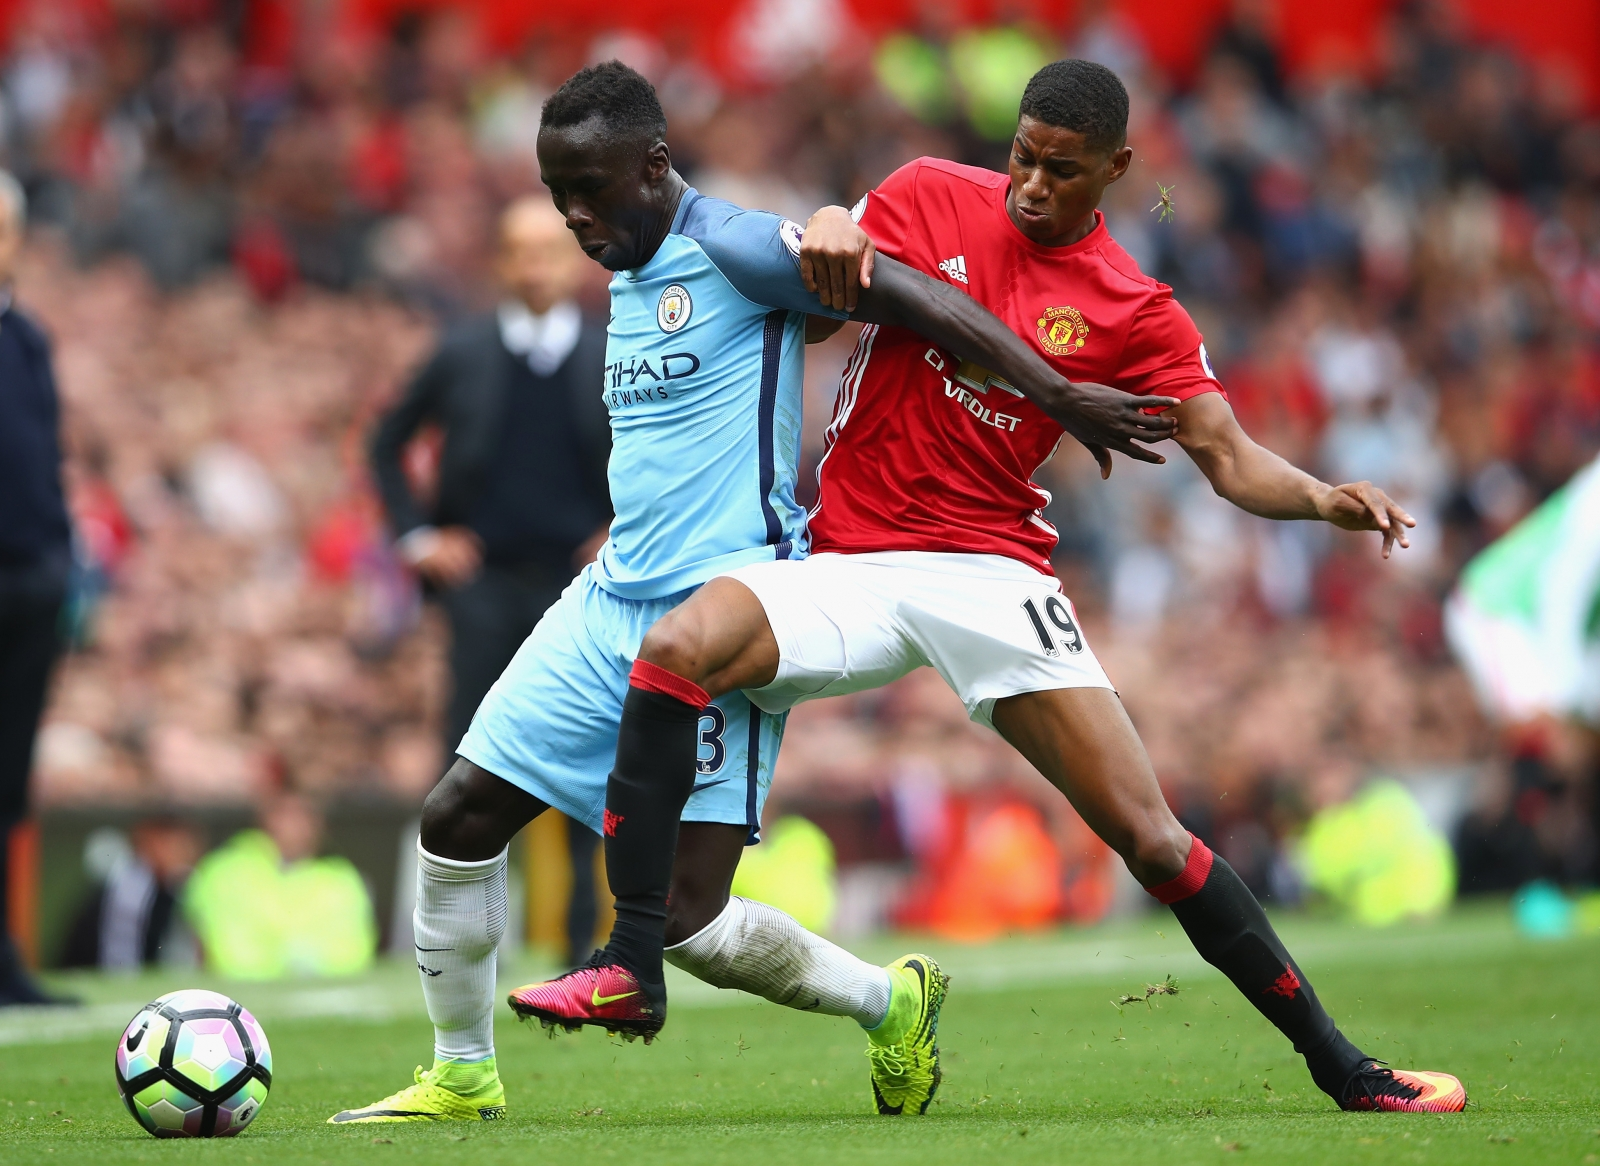 Manchester derby: My goal, a dream come true - Iheanacho